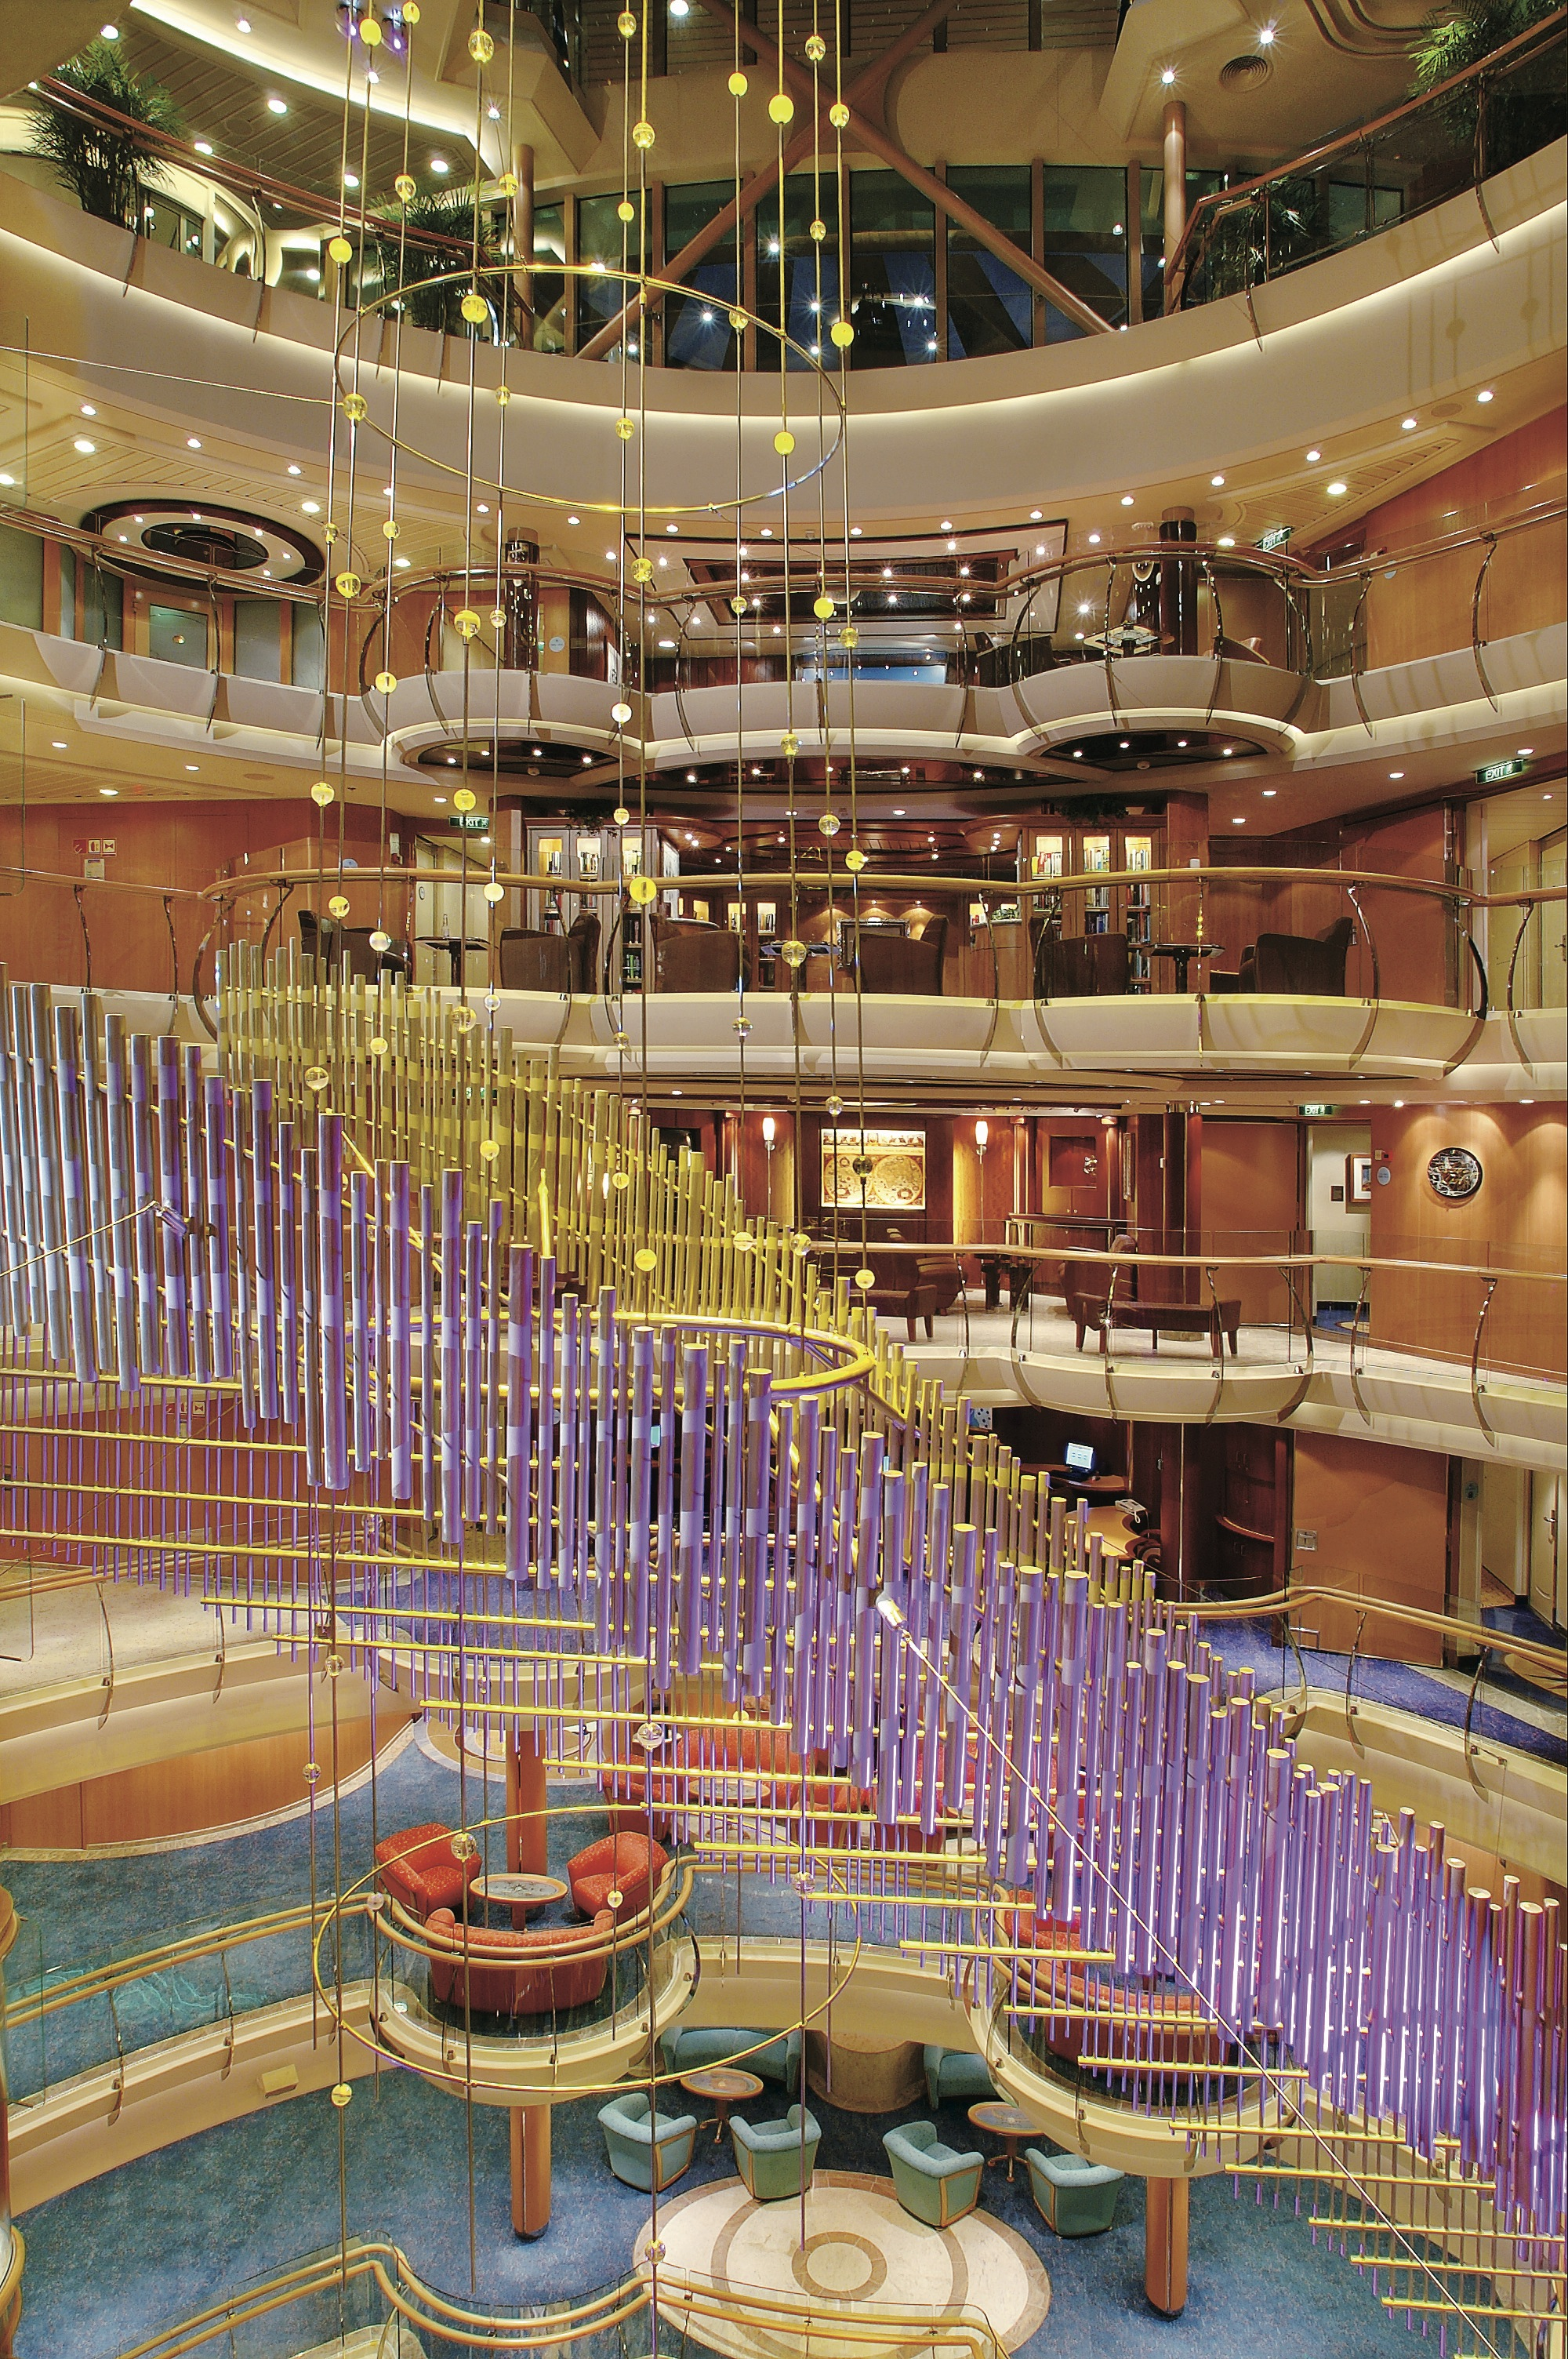 Royal Caribbean International Jewel of the Seas Interior Centrum Installation.jpeg